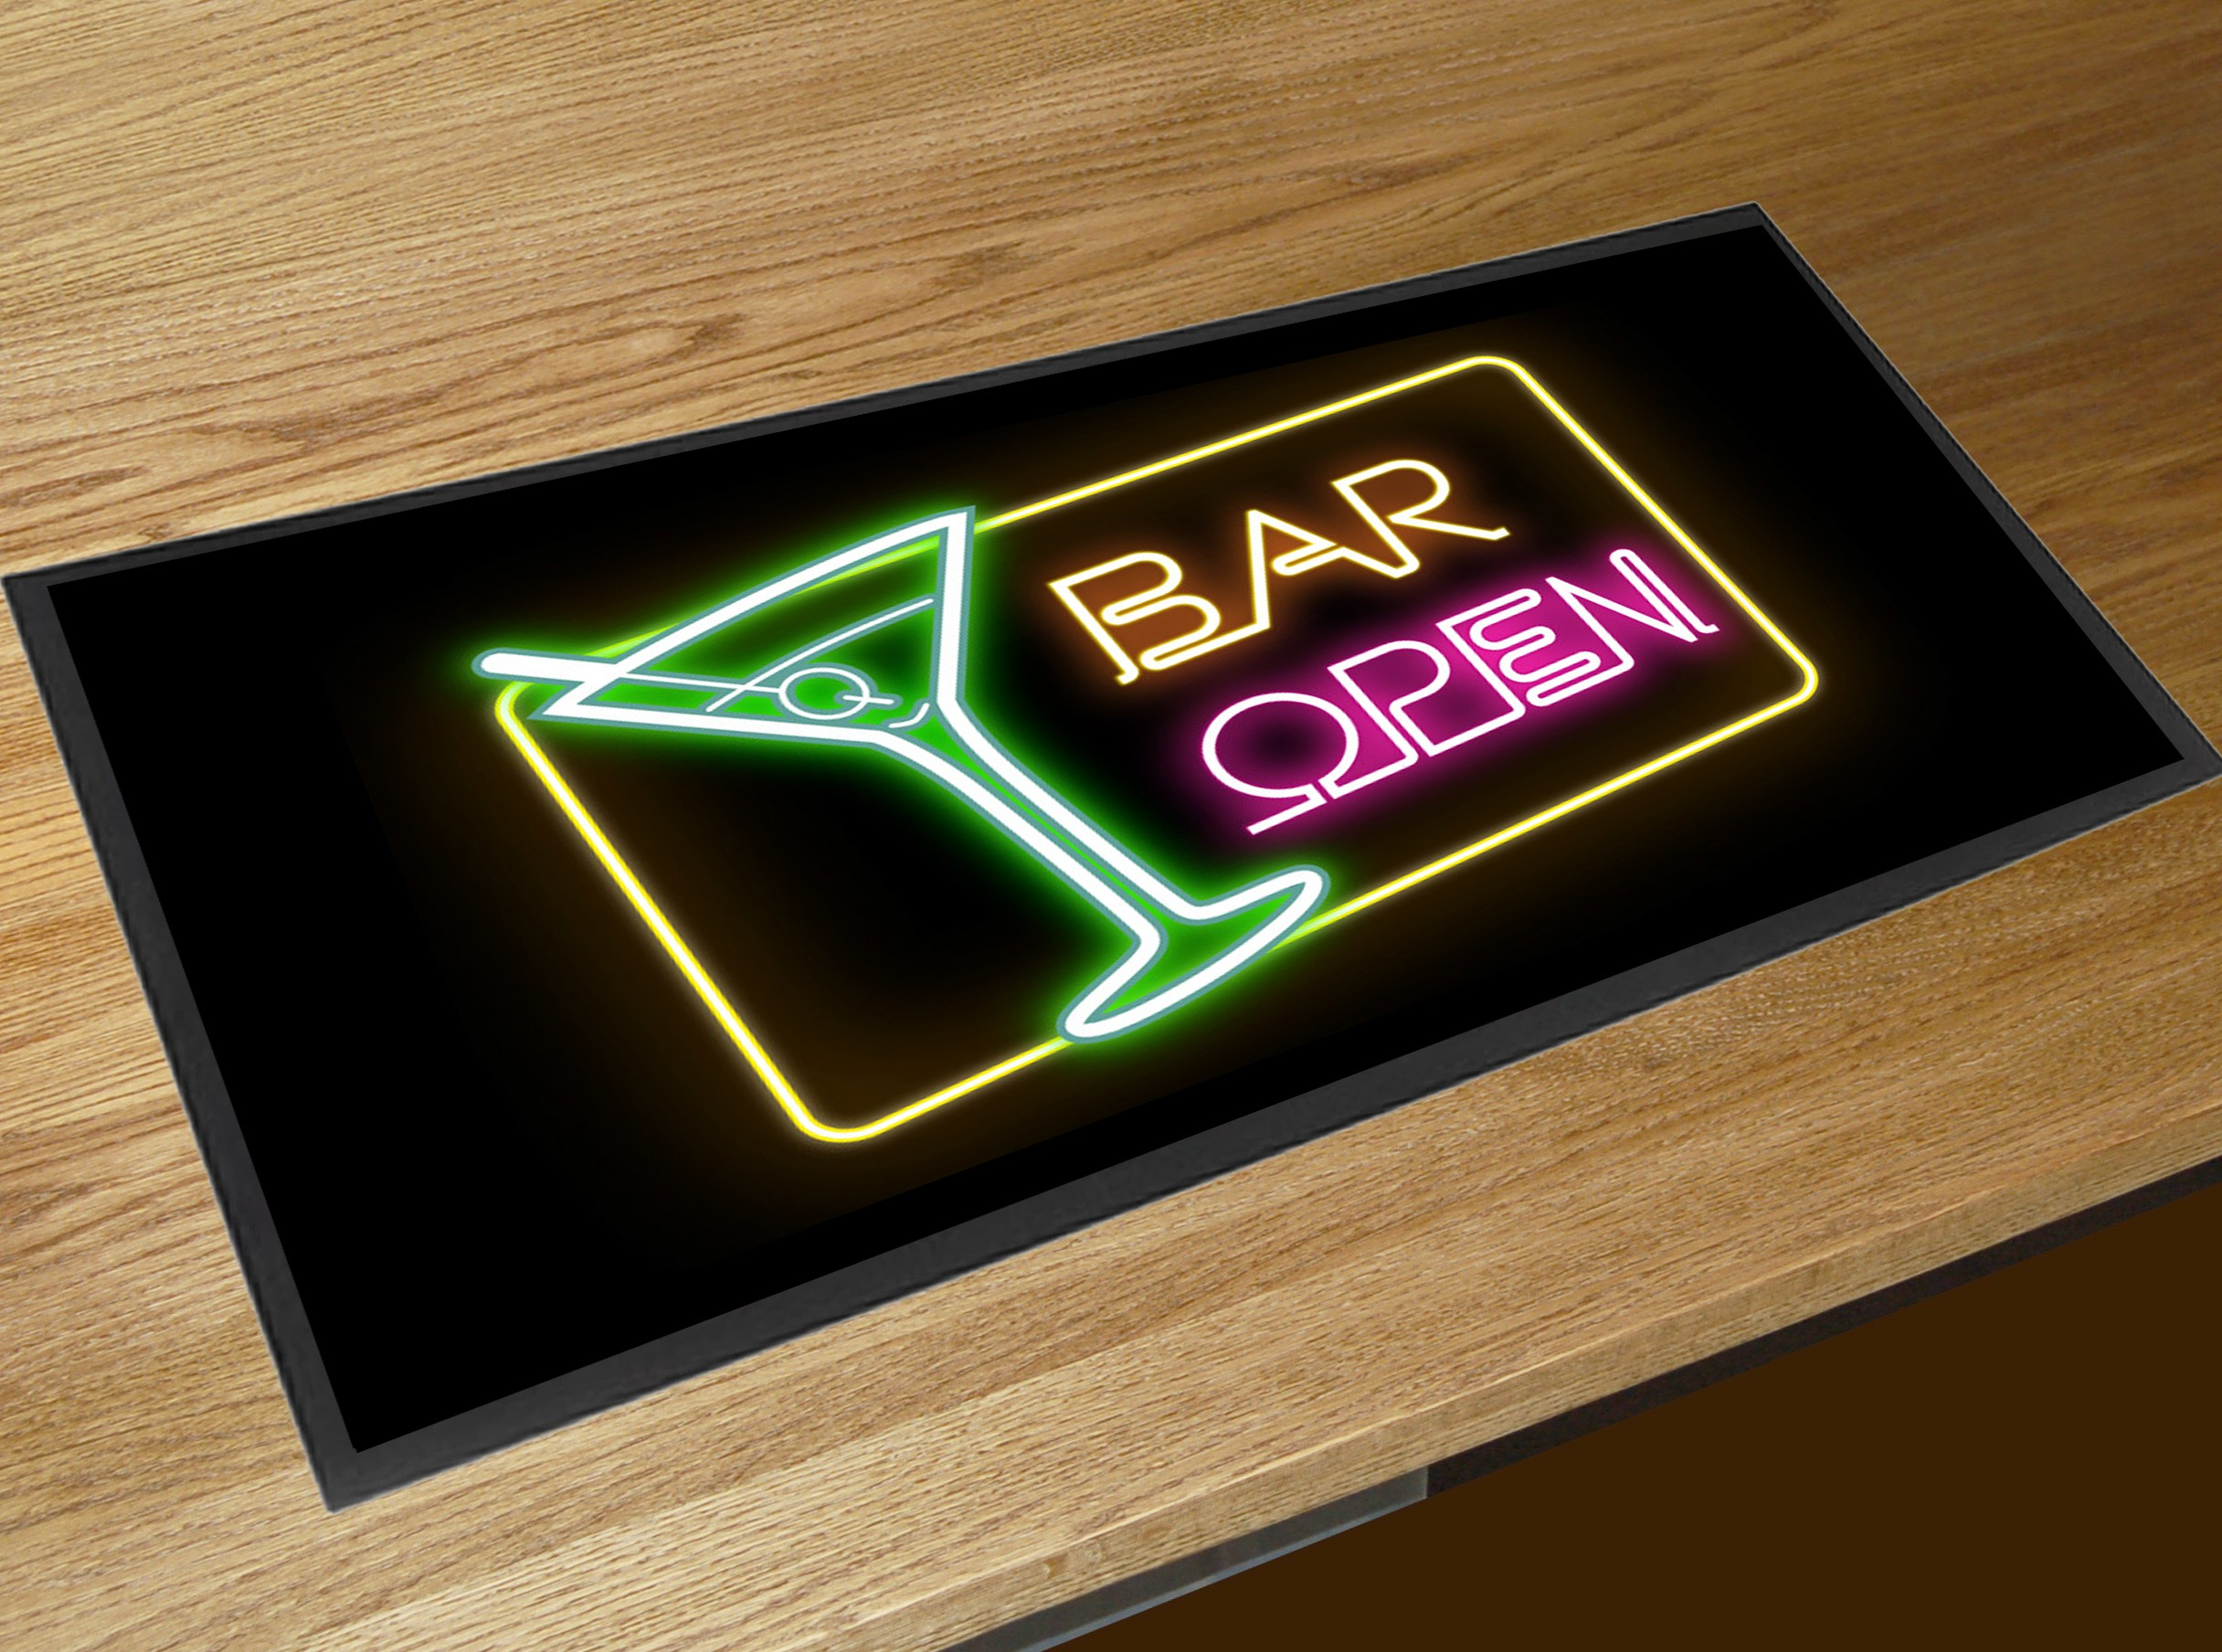 Artylicious Personalised Cocktail glass explosion bar mat runner counter mat